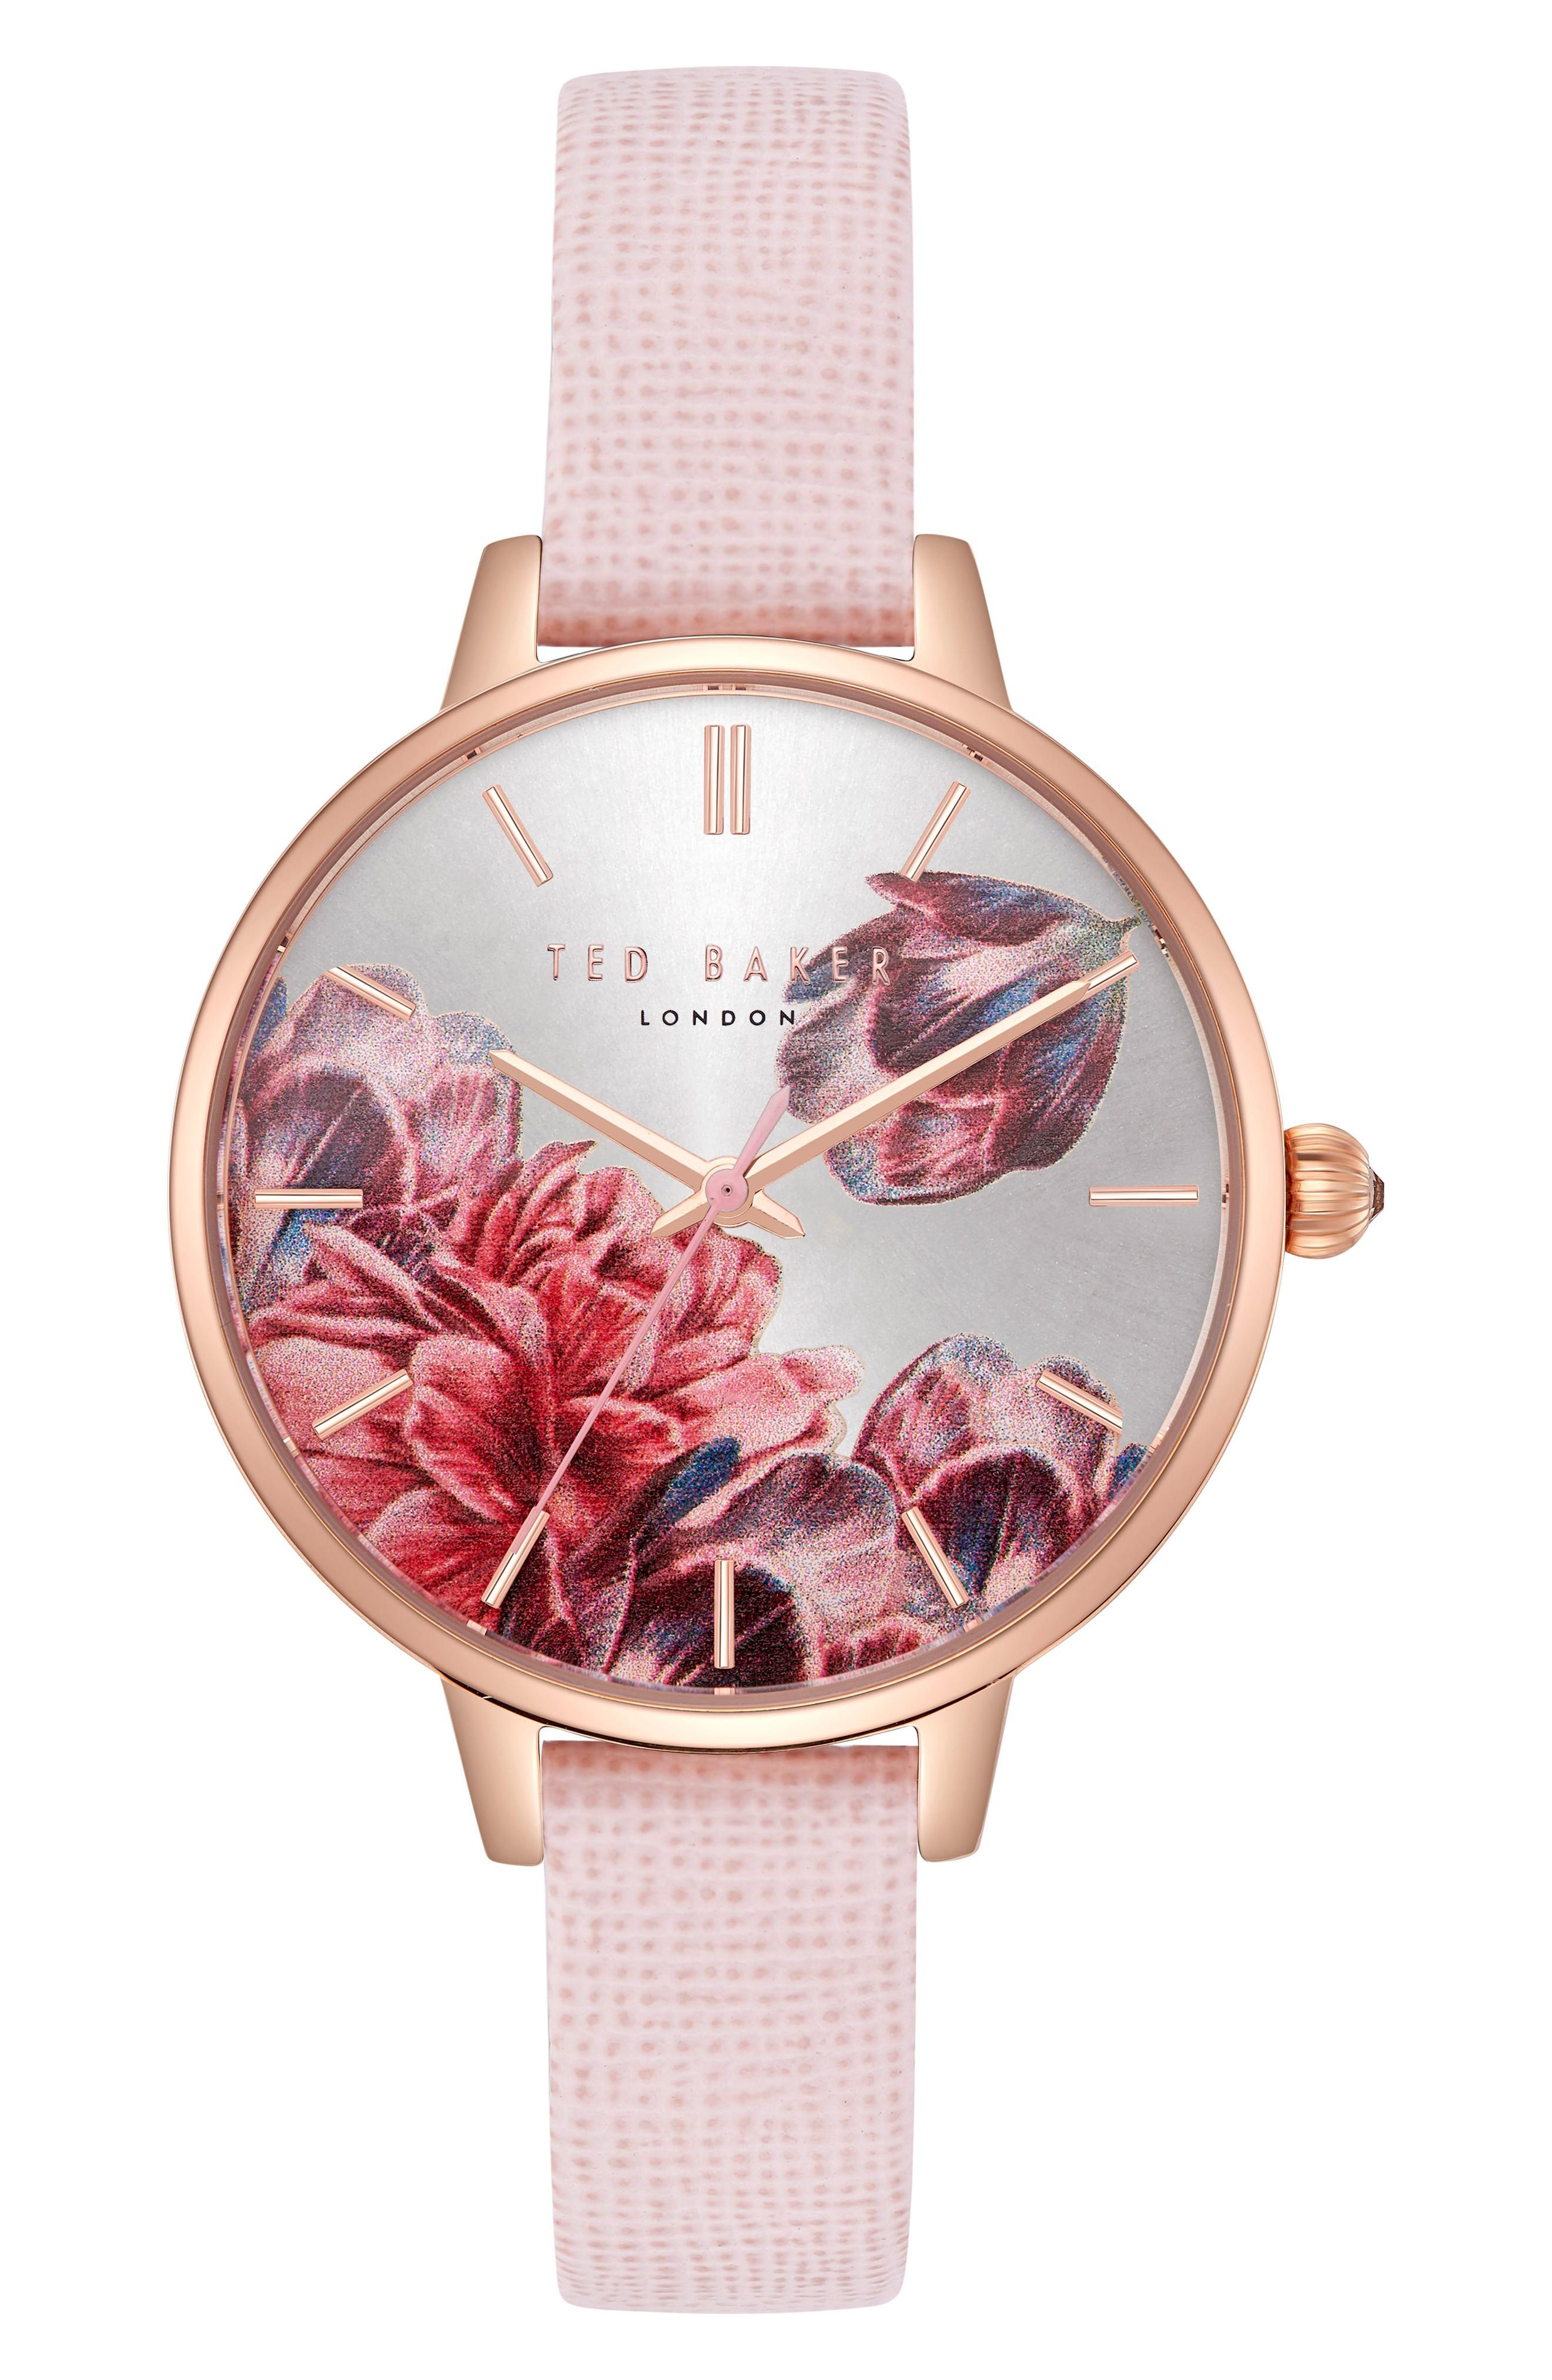 07d1c5f5115a Ted Baker Kate Leather Strap Watch